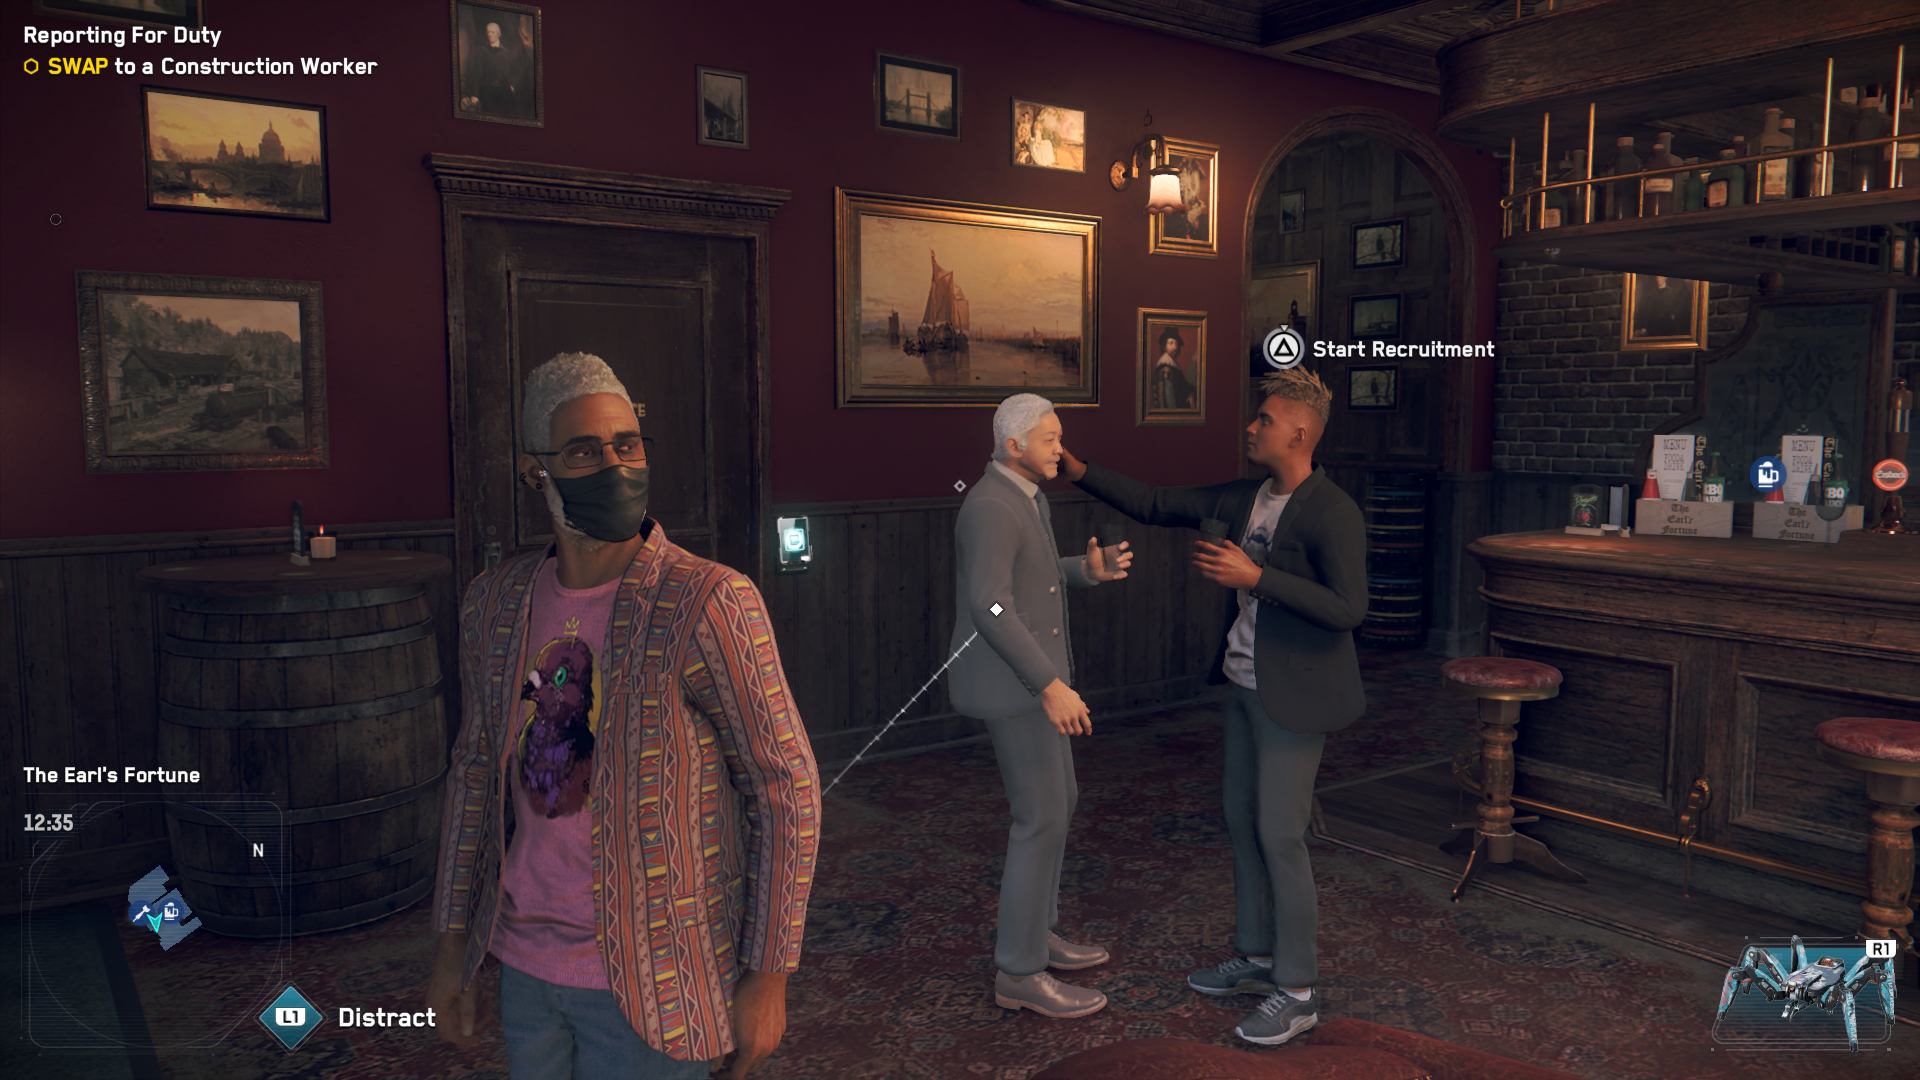 Screenshot from Watchdogs: Legion. Shows the player character wearing a mask inside a pub while two non-player characters without masks in the background talk. One of the non-player characters is casually laying a hand on the shoulder of the other.